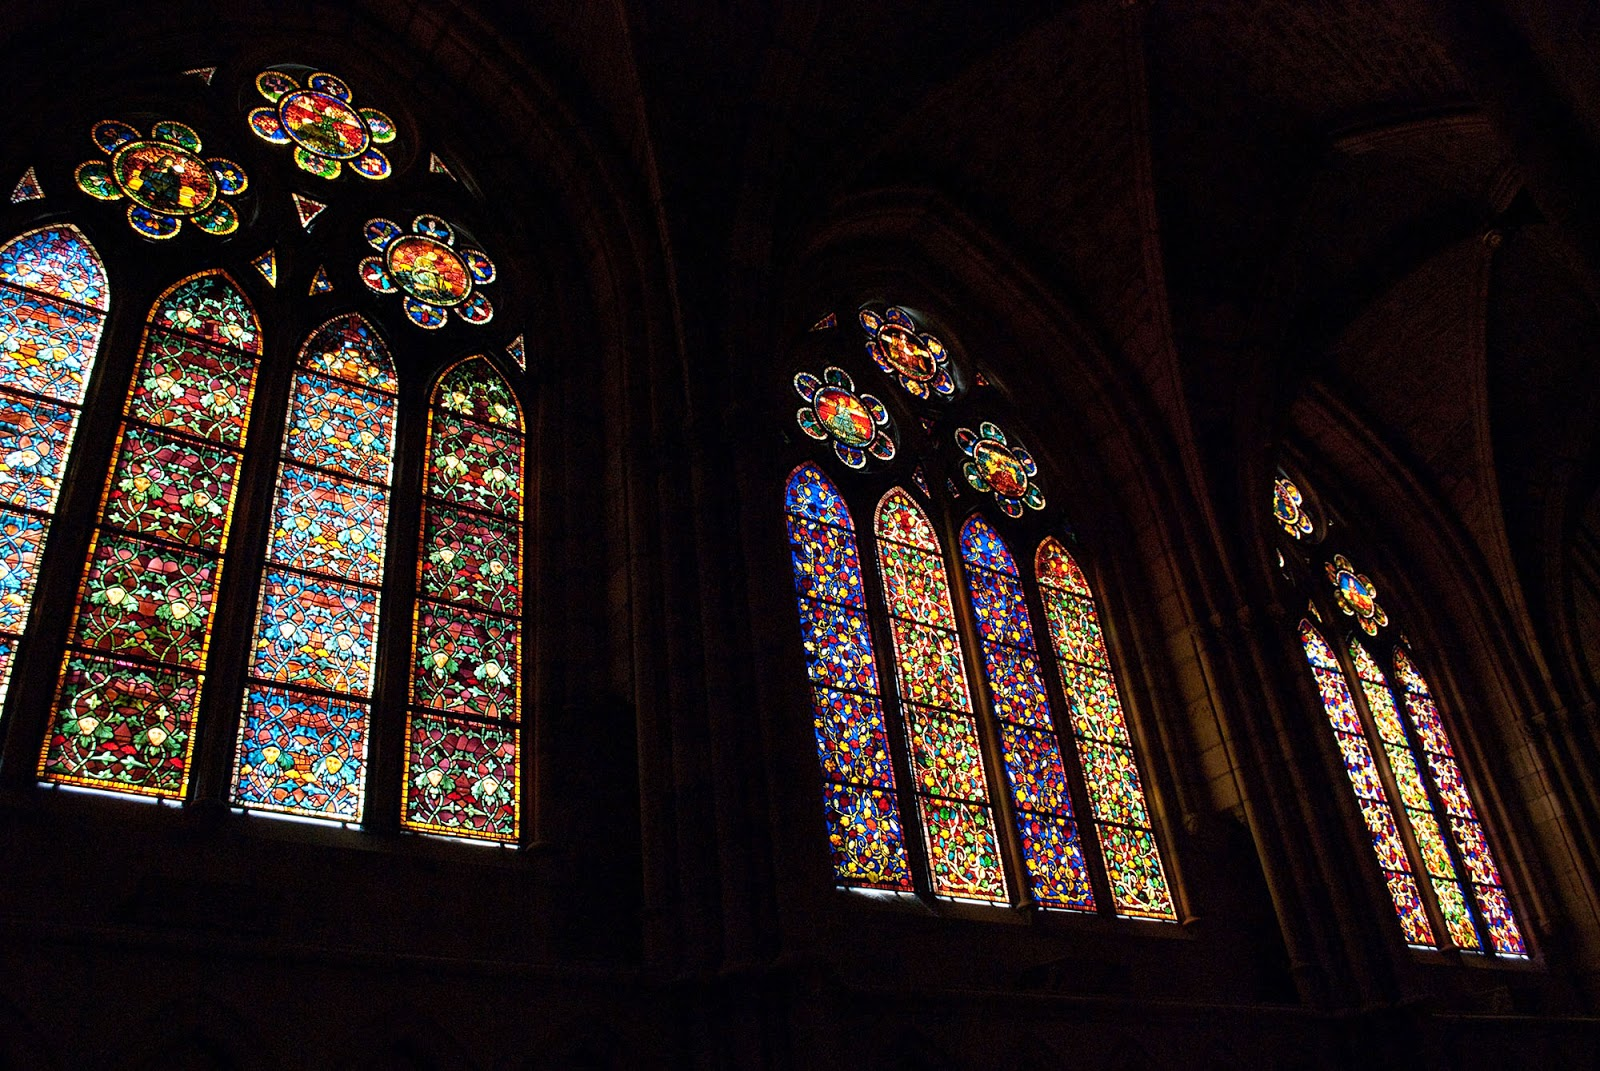 stained-glass windows vidrieras cathedral leon spain